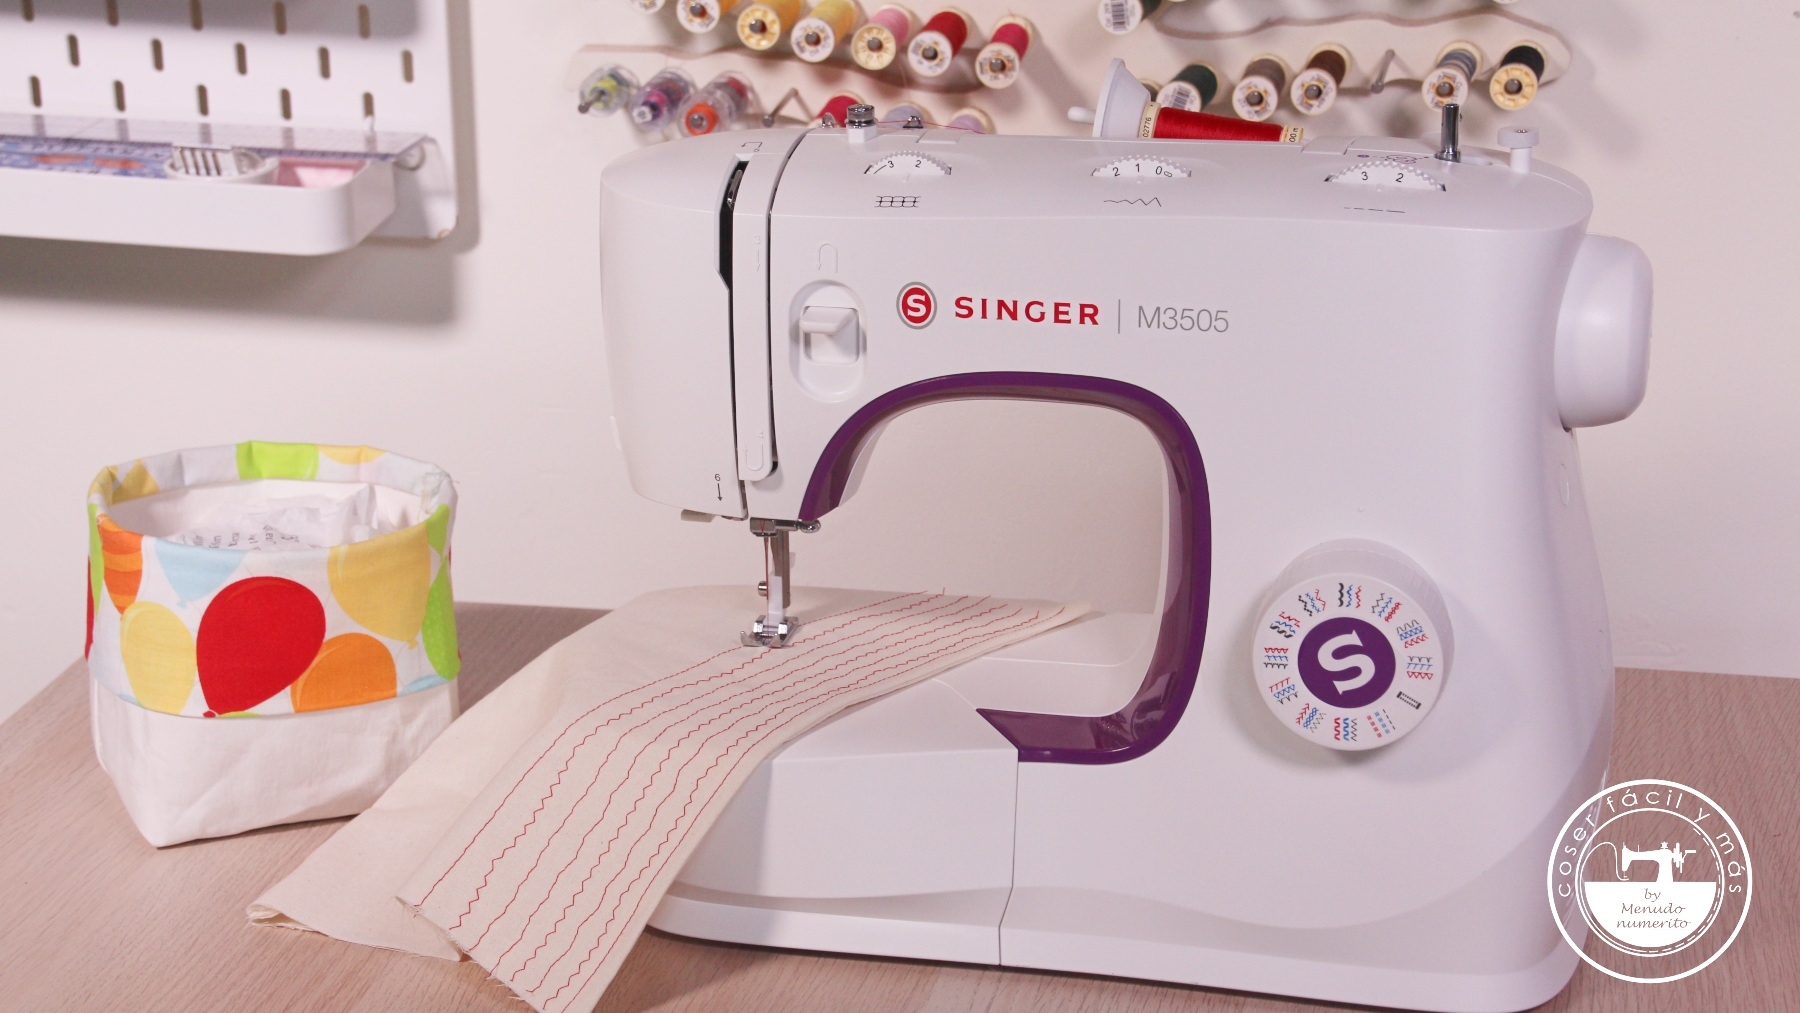 singer m3505 menudo numerito blogs de costura review